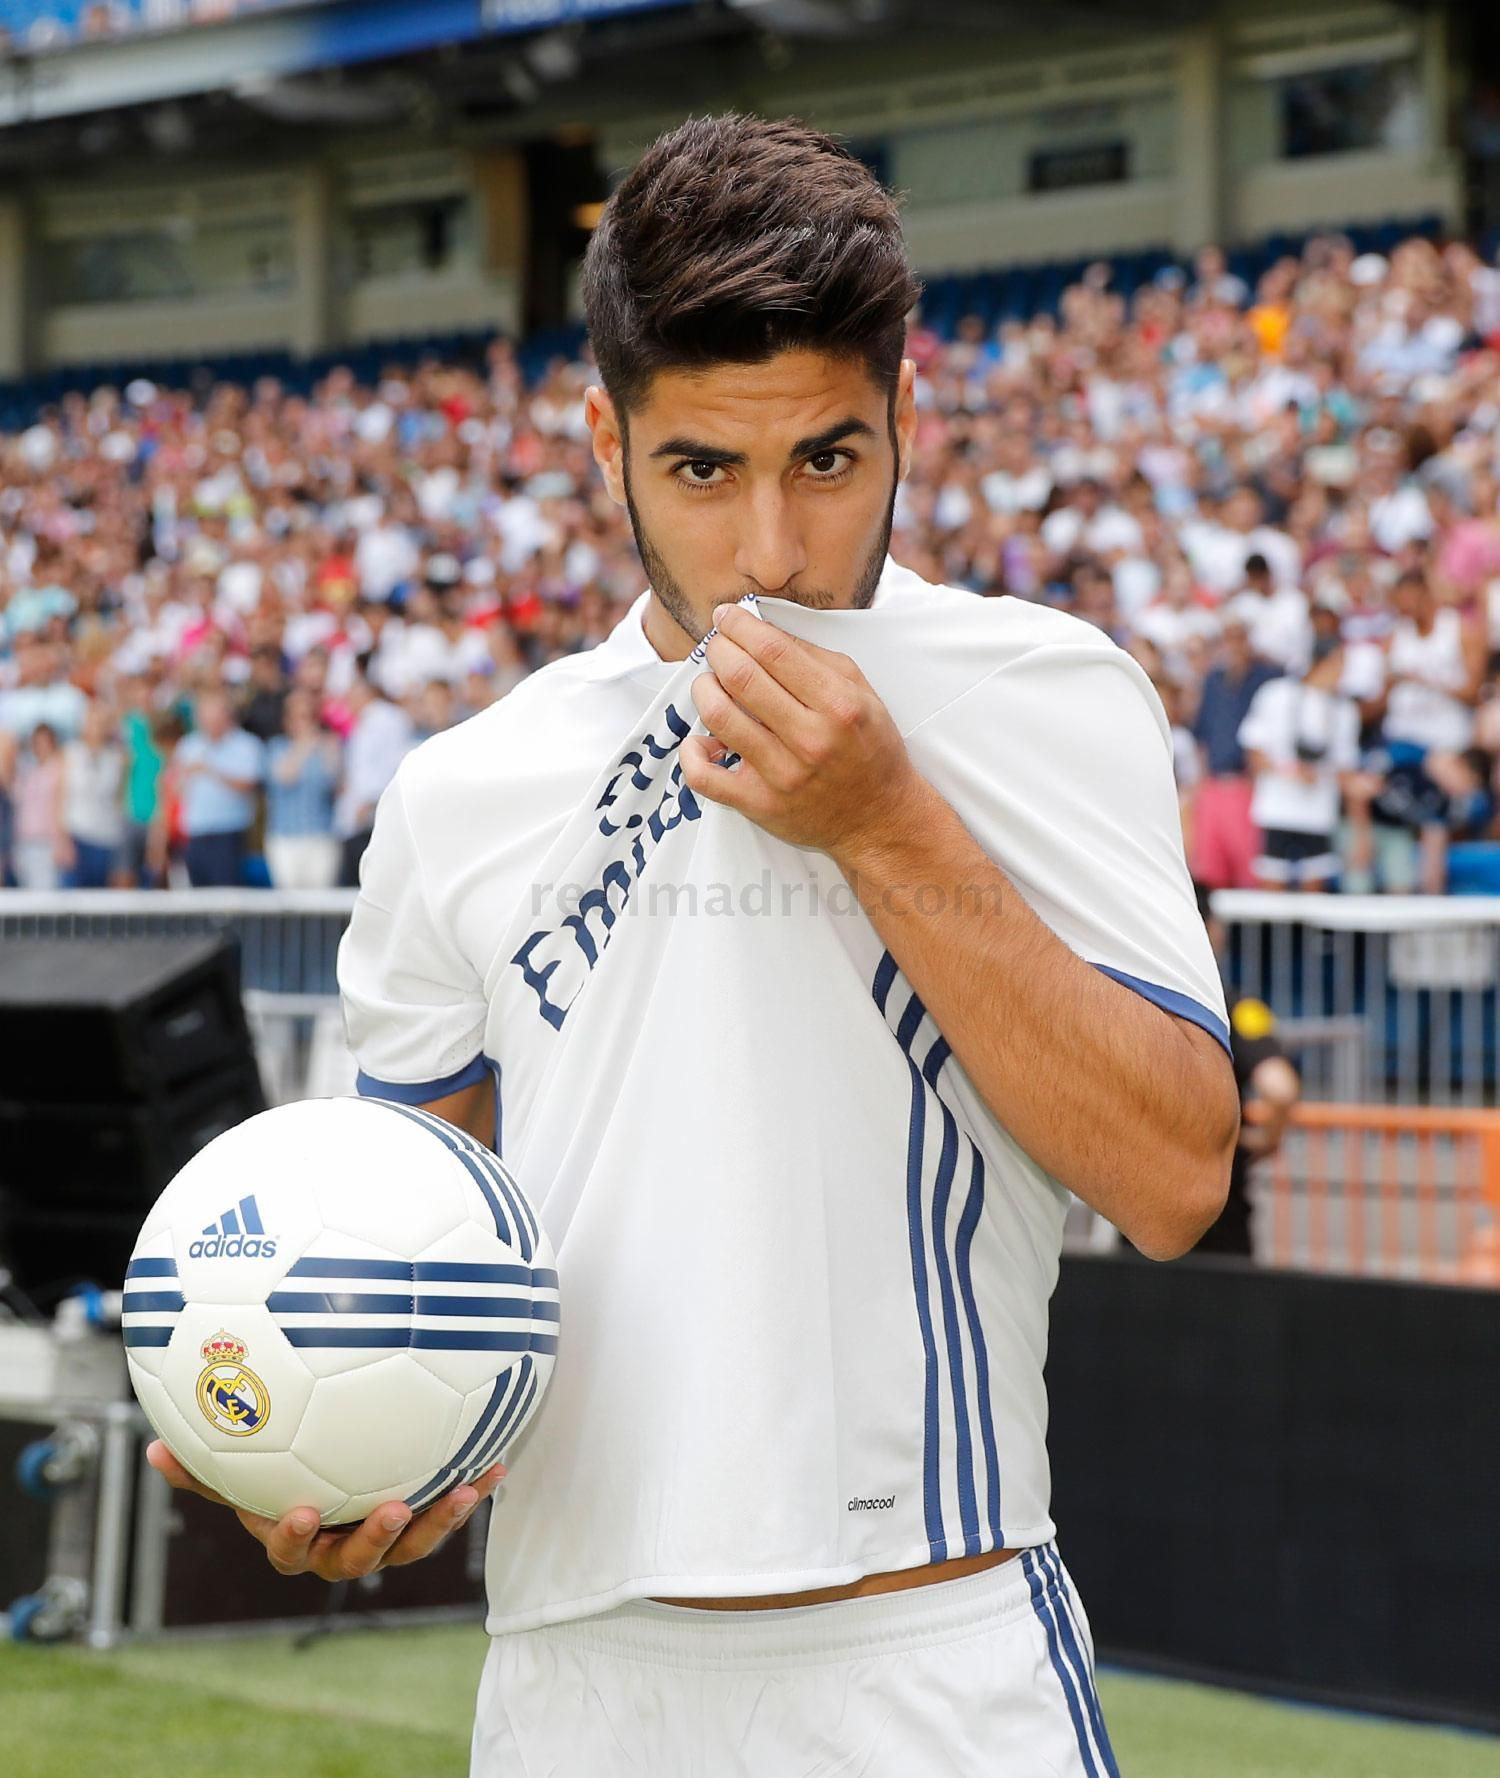 Real Madrid Cf Web Oficial Asensio Marco Asensio Marco Asensio Real Madrid